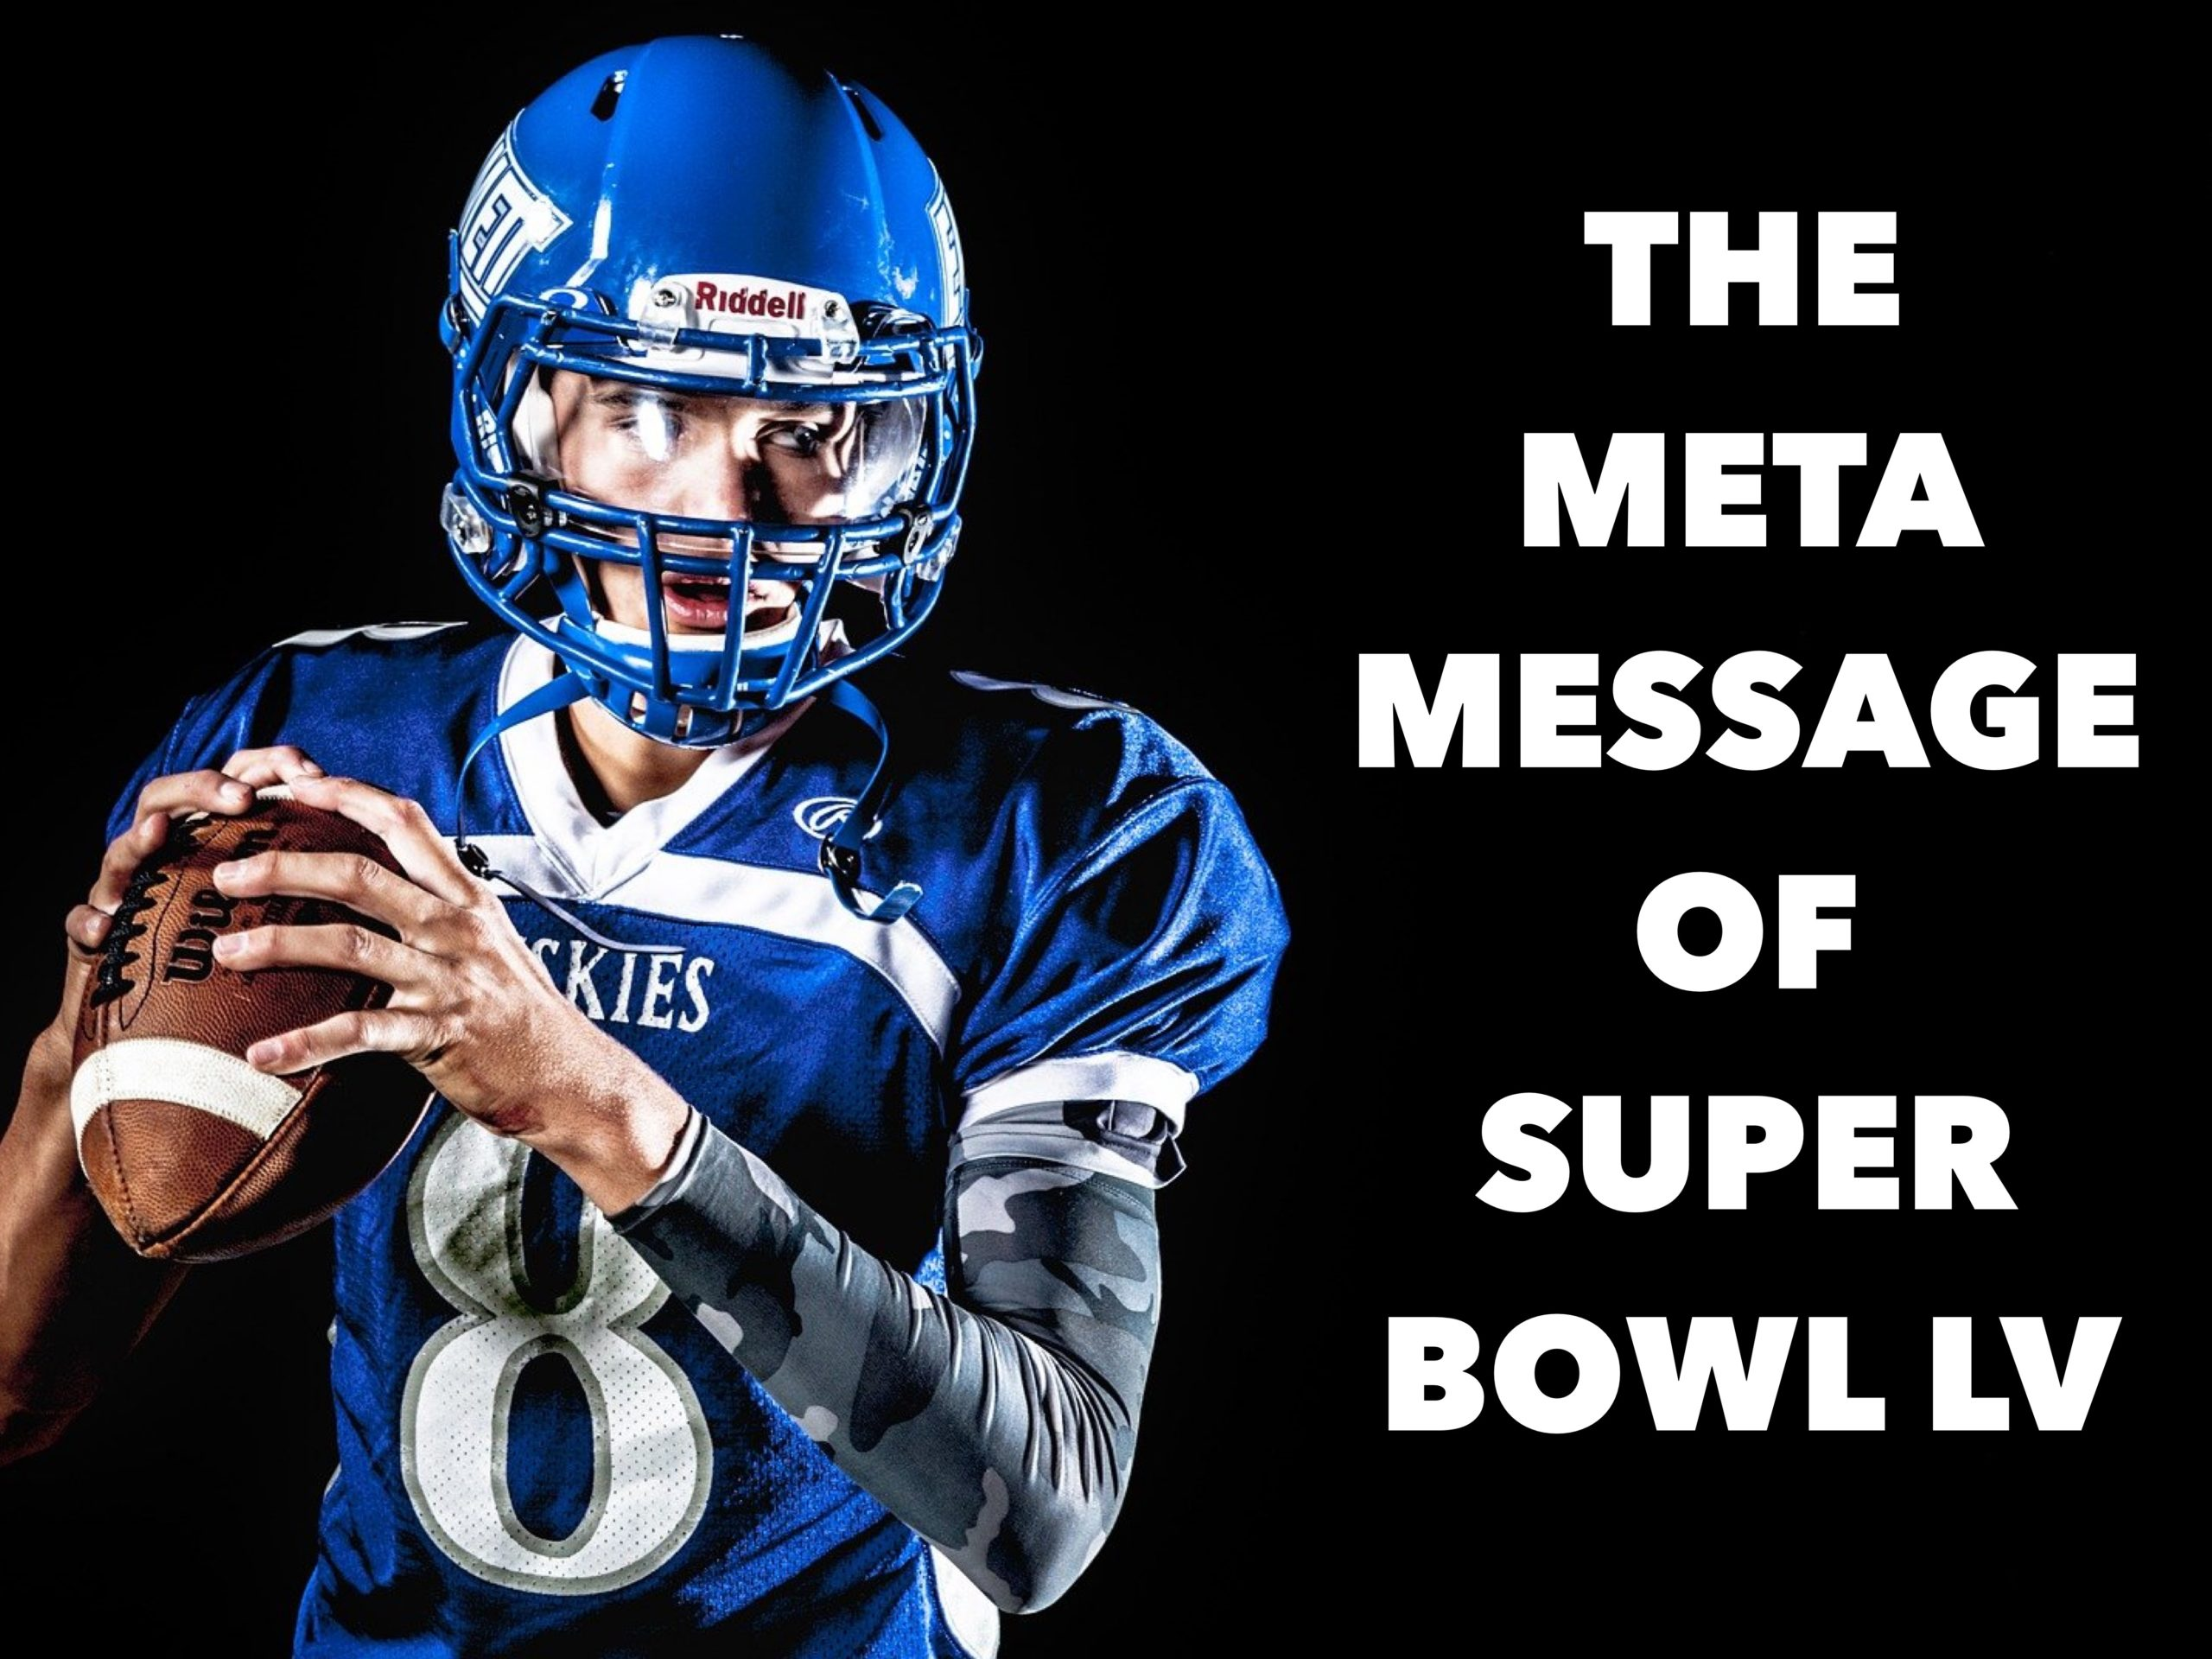 The Meta Message of Super Bowl LV.